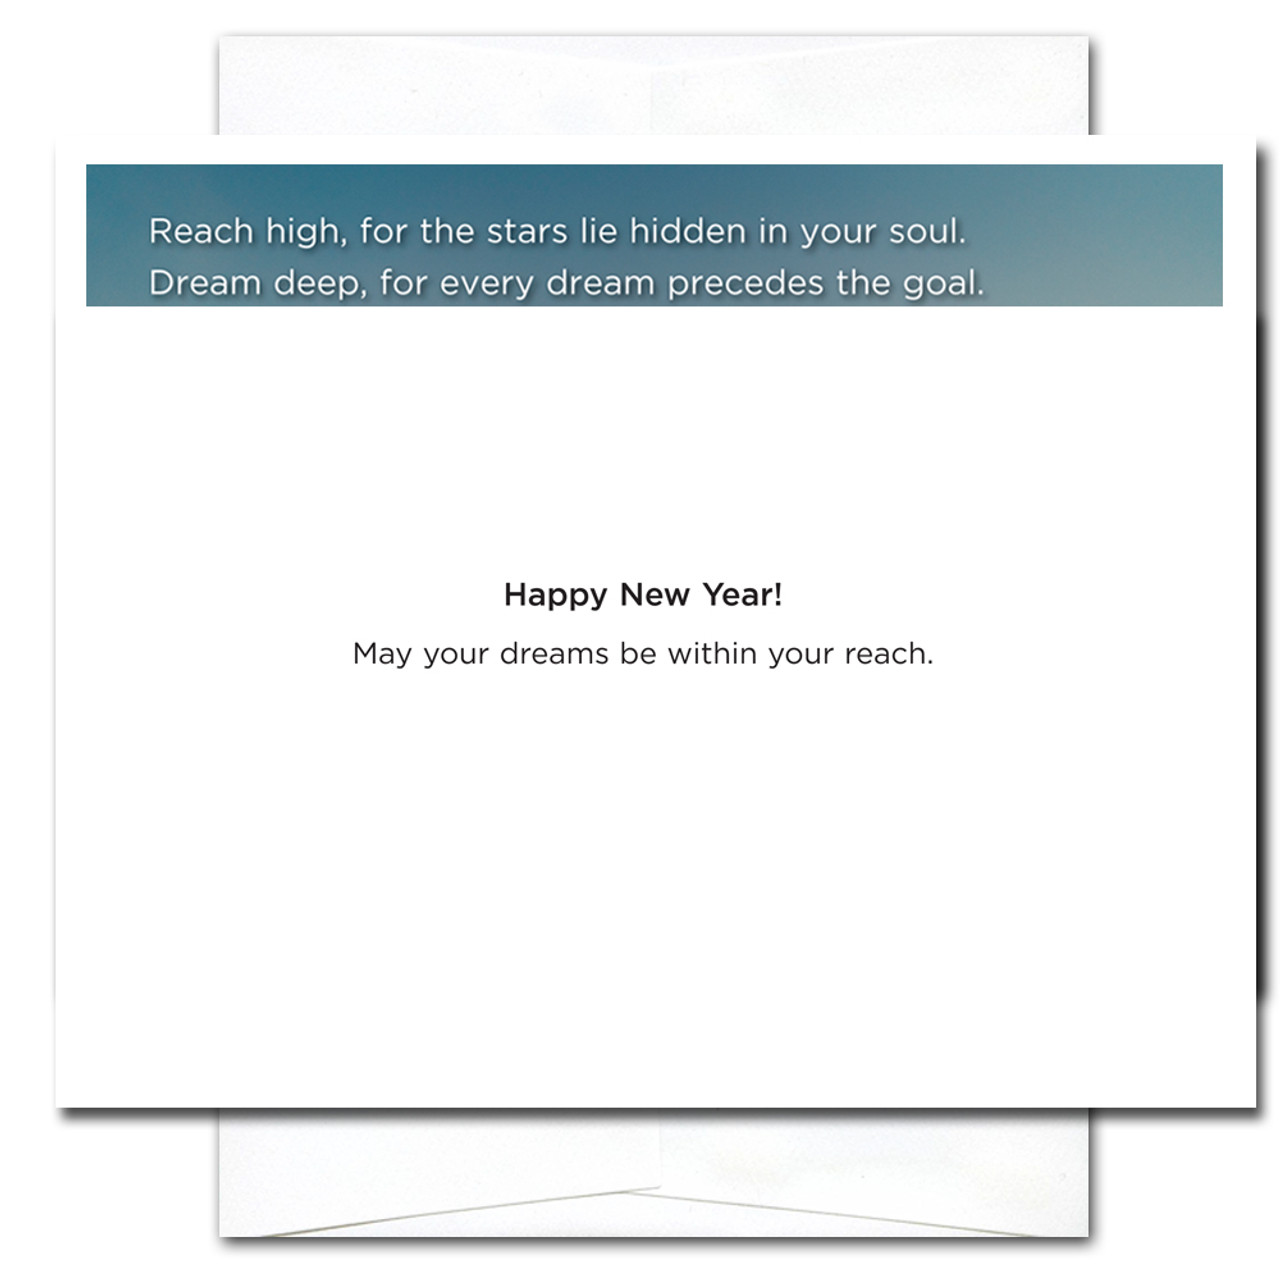 Inside of Reach High card reads: Happy New Year! May your dreams be within your reach.